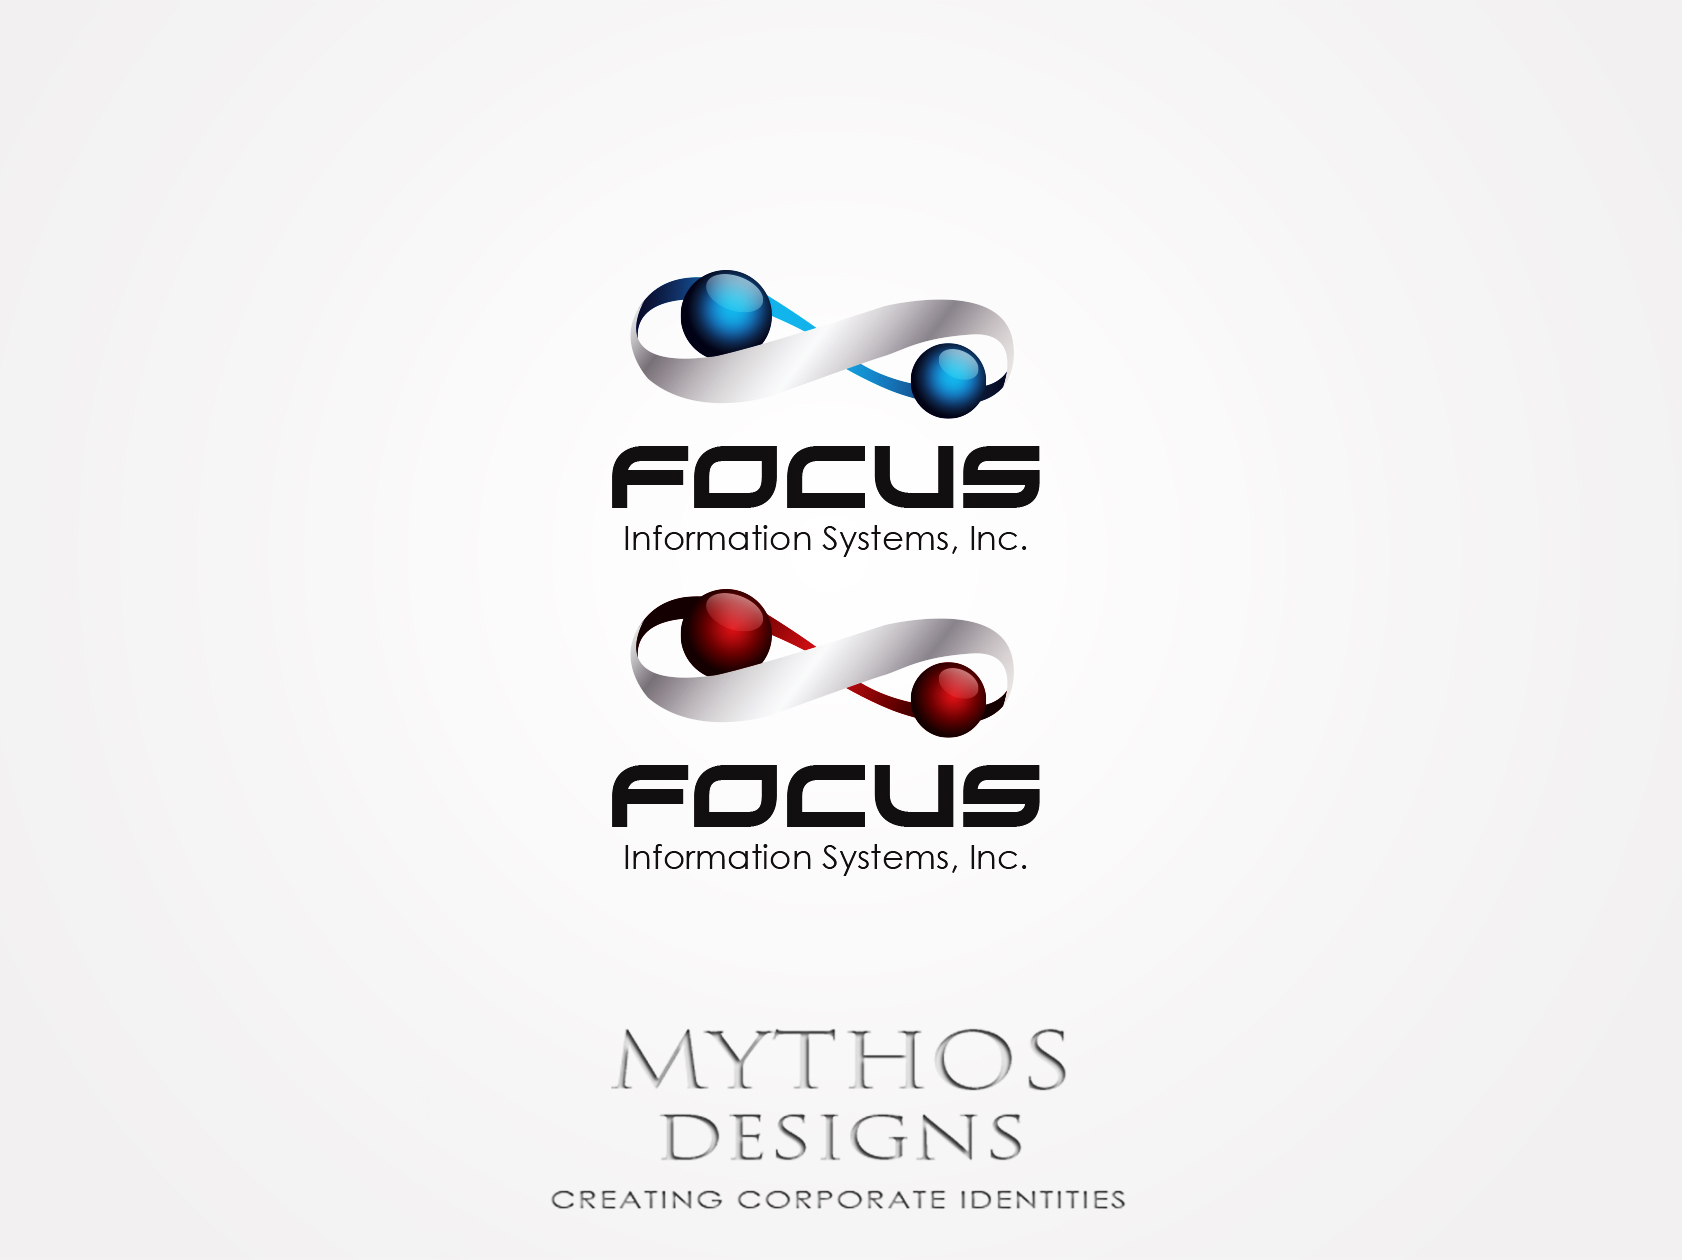 Logo Design by Mythos Designs - Entry No. 53 in the Logo Design Contest Artistic Logo Design for Focus Information Systems, Inc..